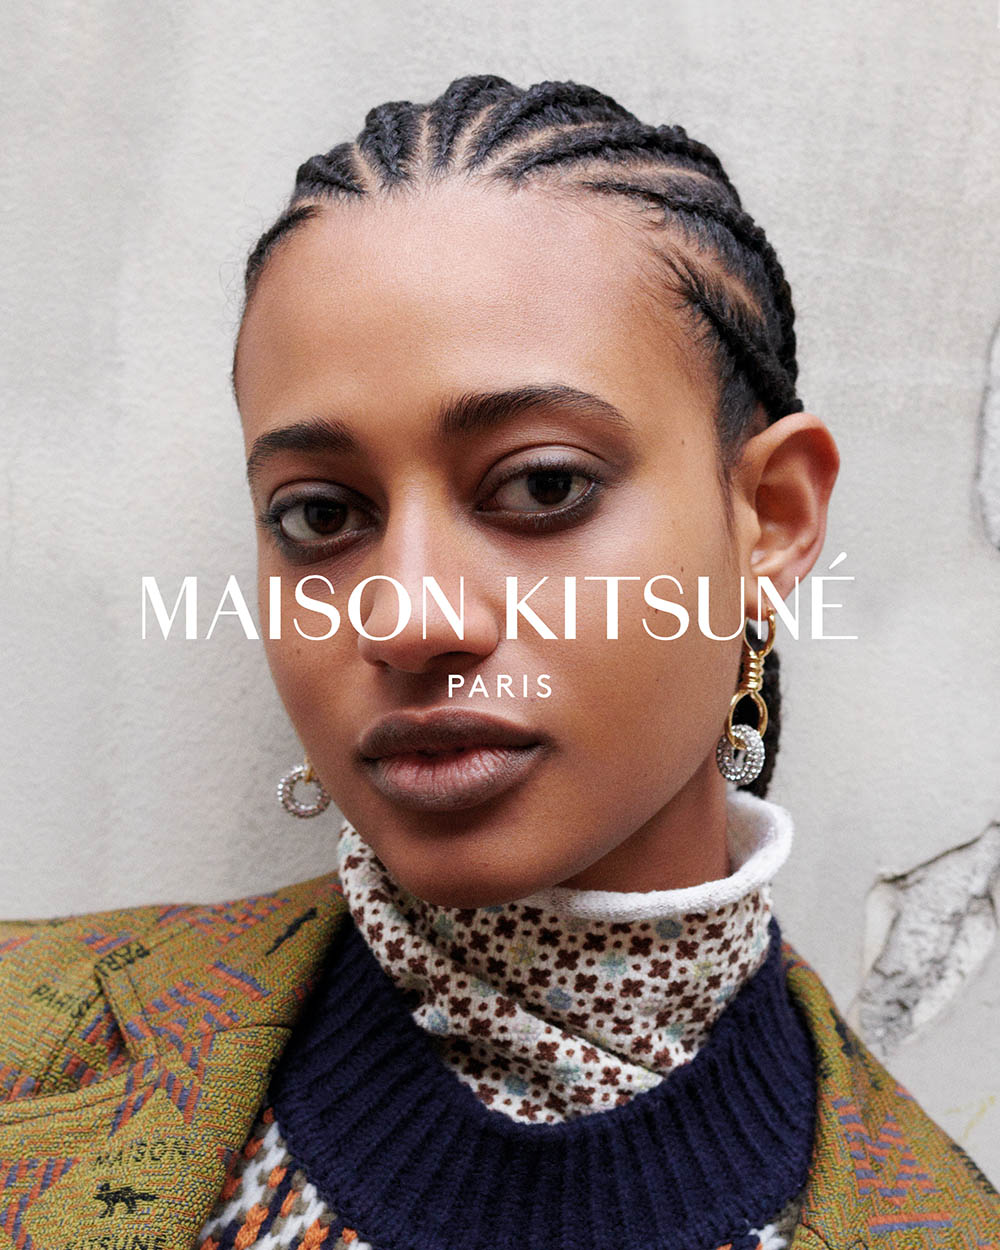 Maison Kitsuné Fall Winter 2020 Campaign